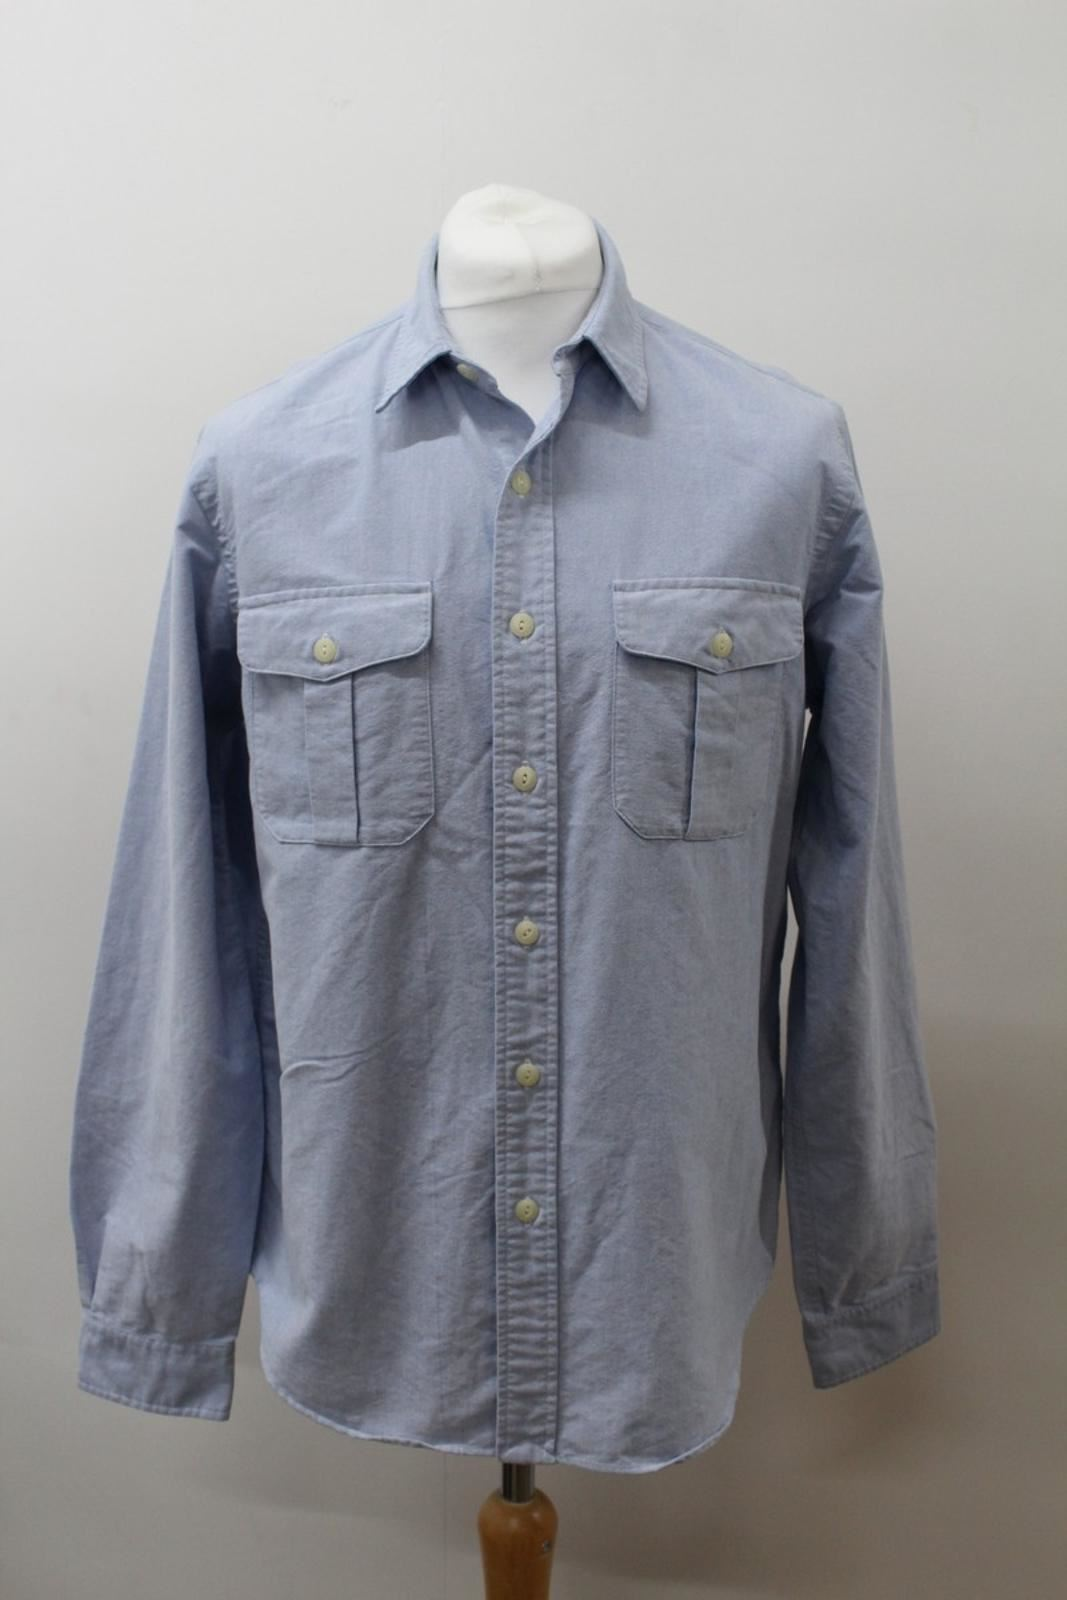 POLO-BY-RALPH-LAUREN-Men-039-s-Blue-Cotton-Long-Sleeve-Collared-Casual-Shirt-L